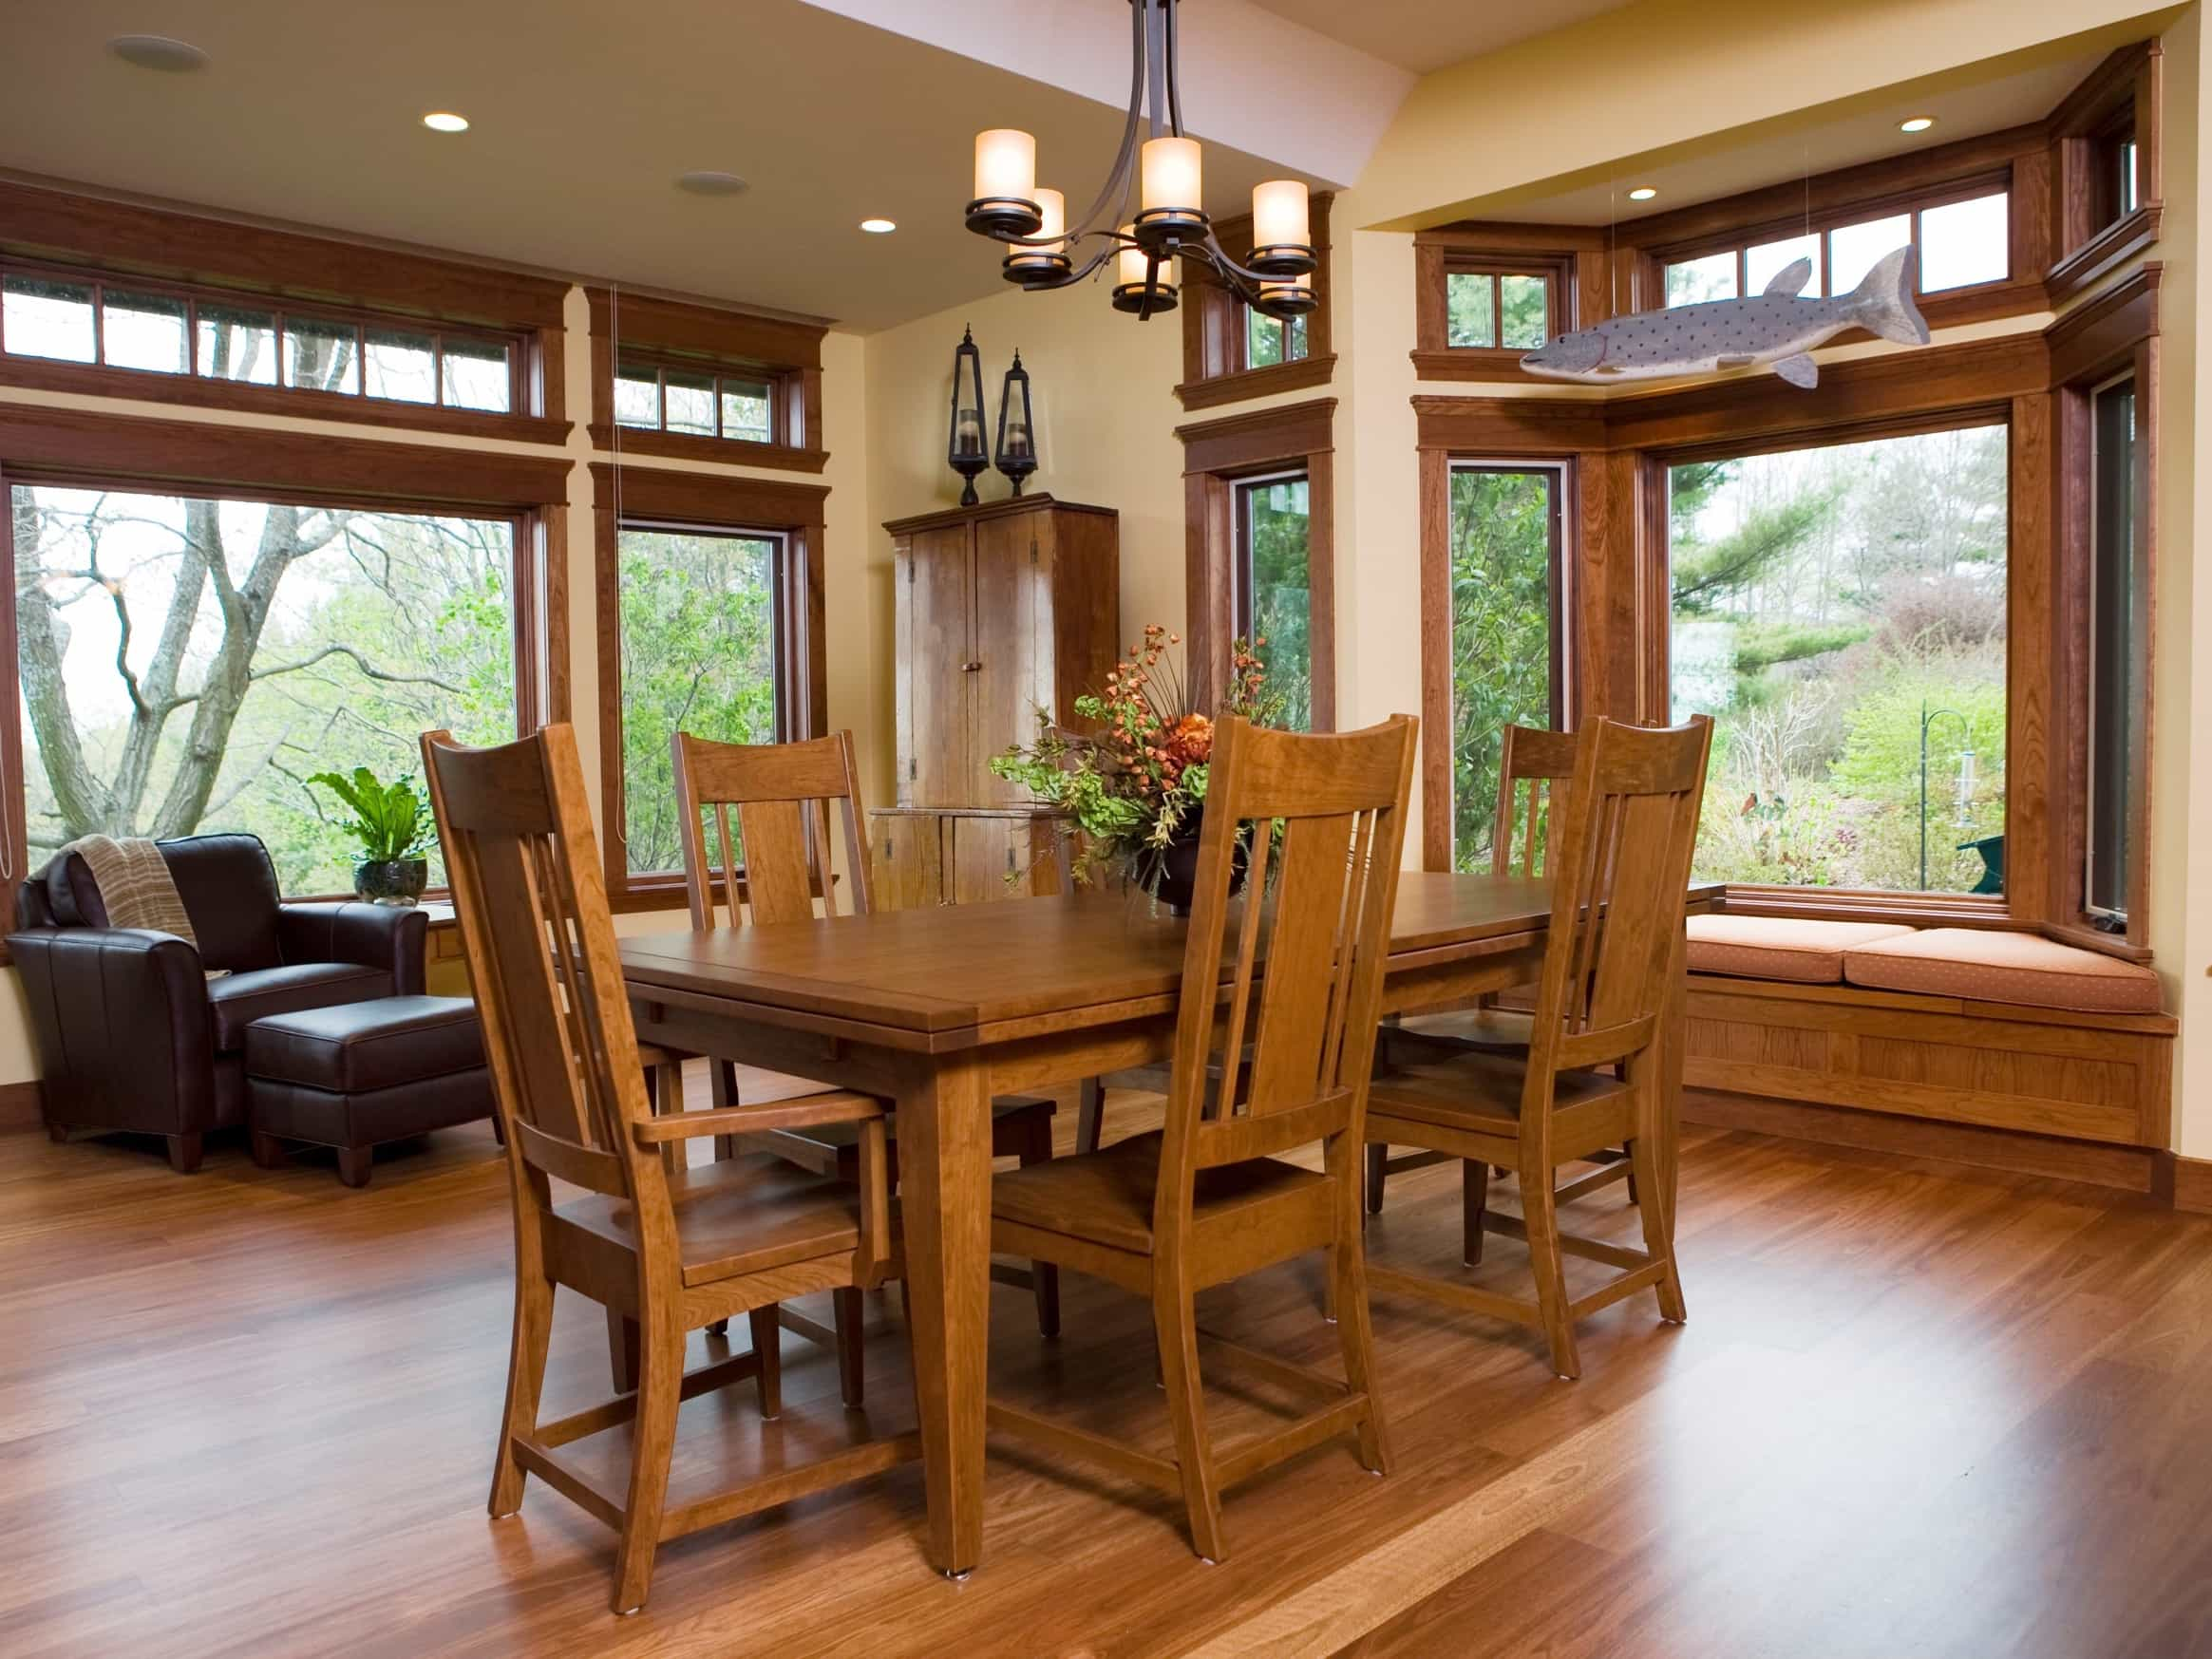 Featured Image of Casual Mission Style Dining Room With The Custom Woodwork Craftsman Design